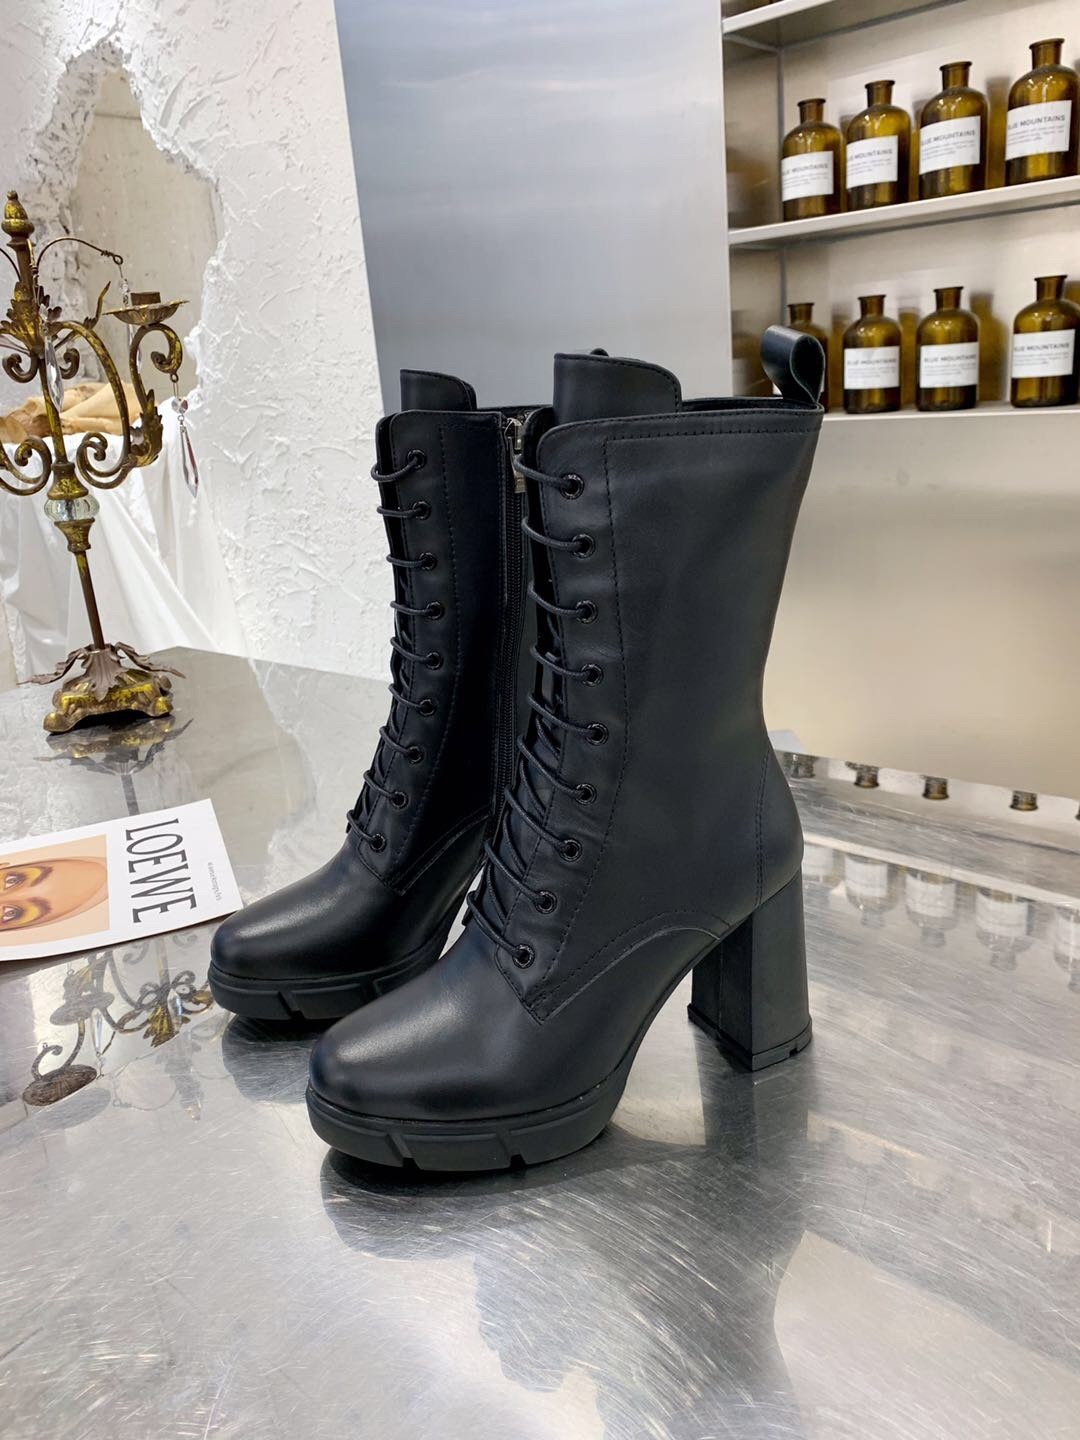 Image of lv louis vuitton trending womens men leather side zip lace up ankle boots shoes high boots 237